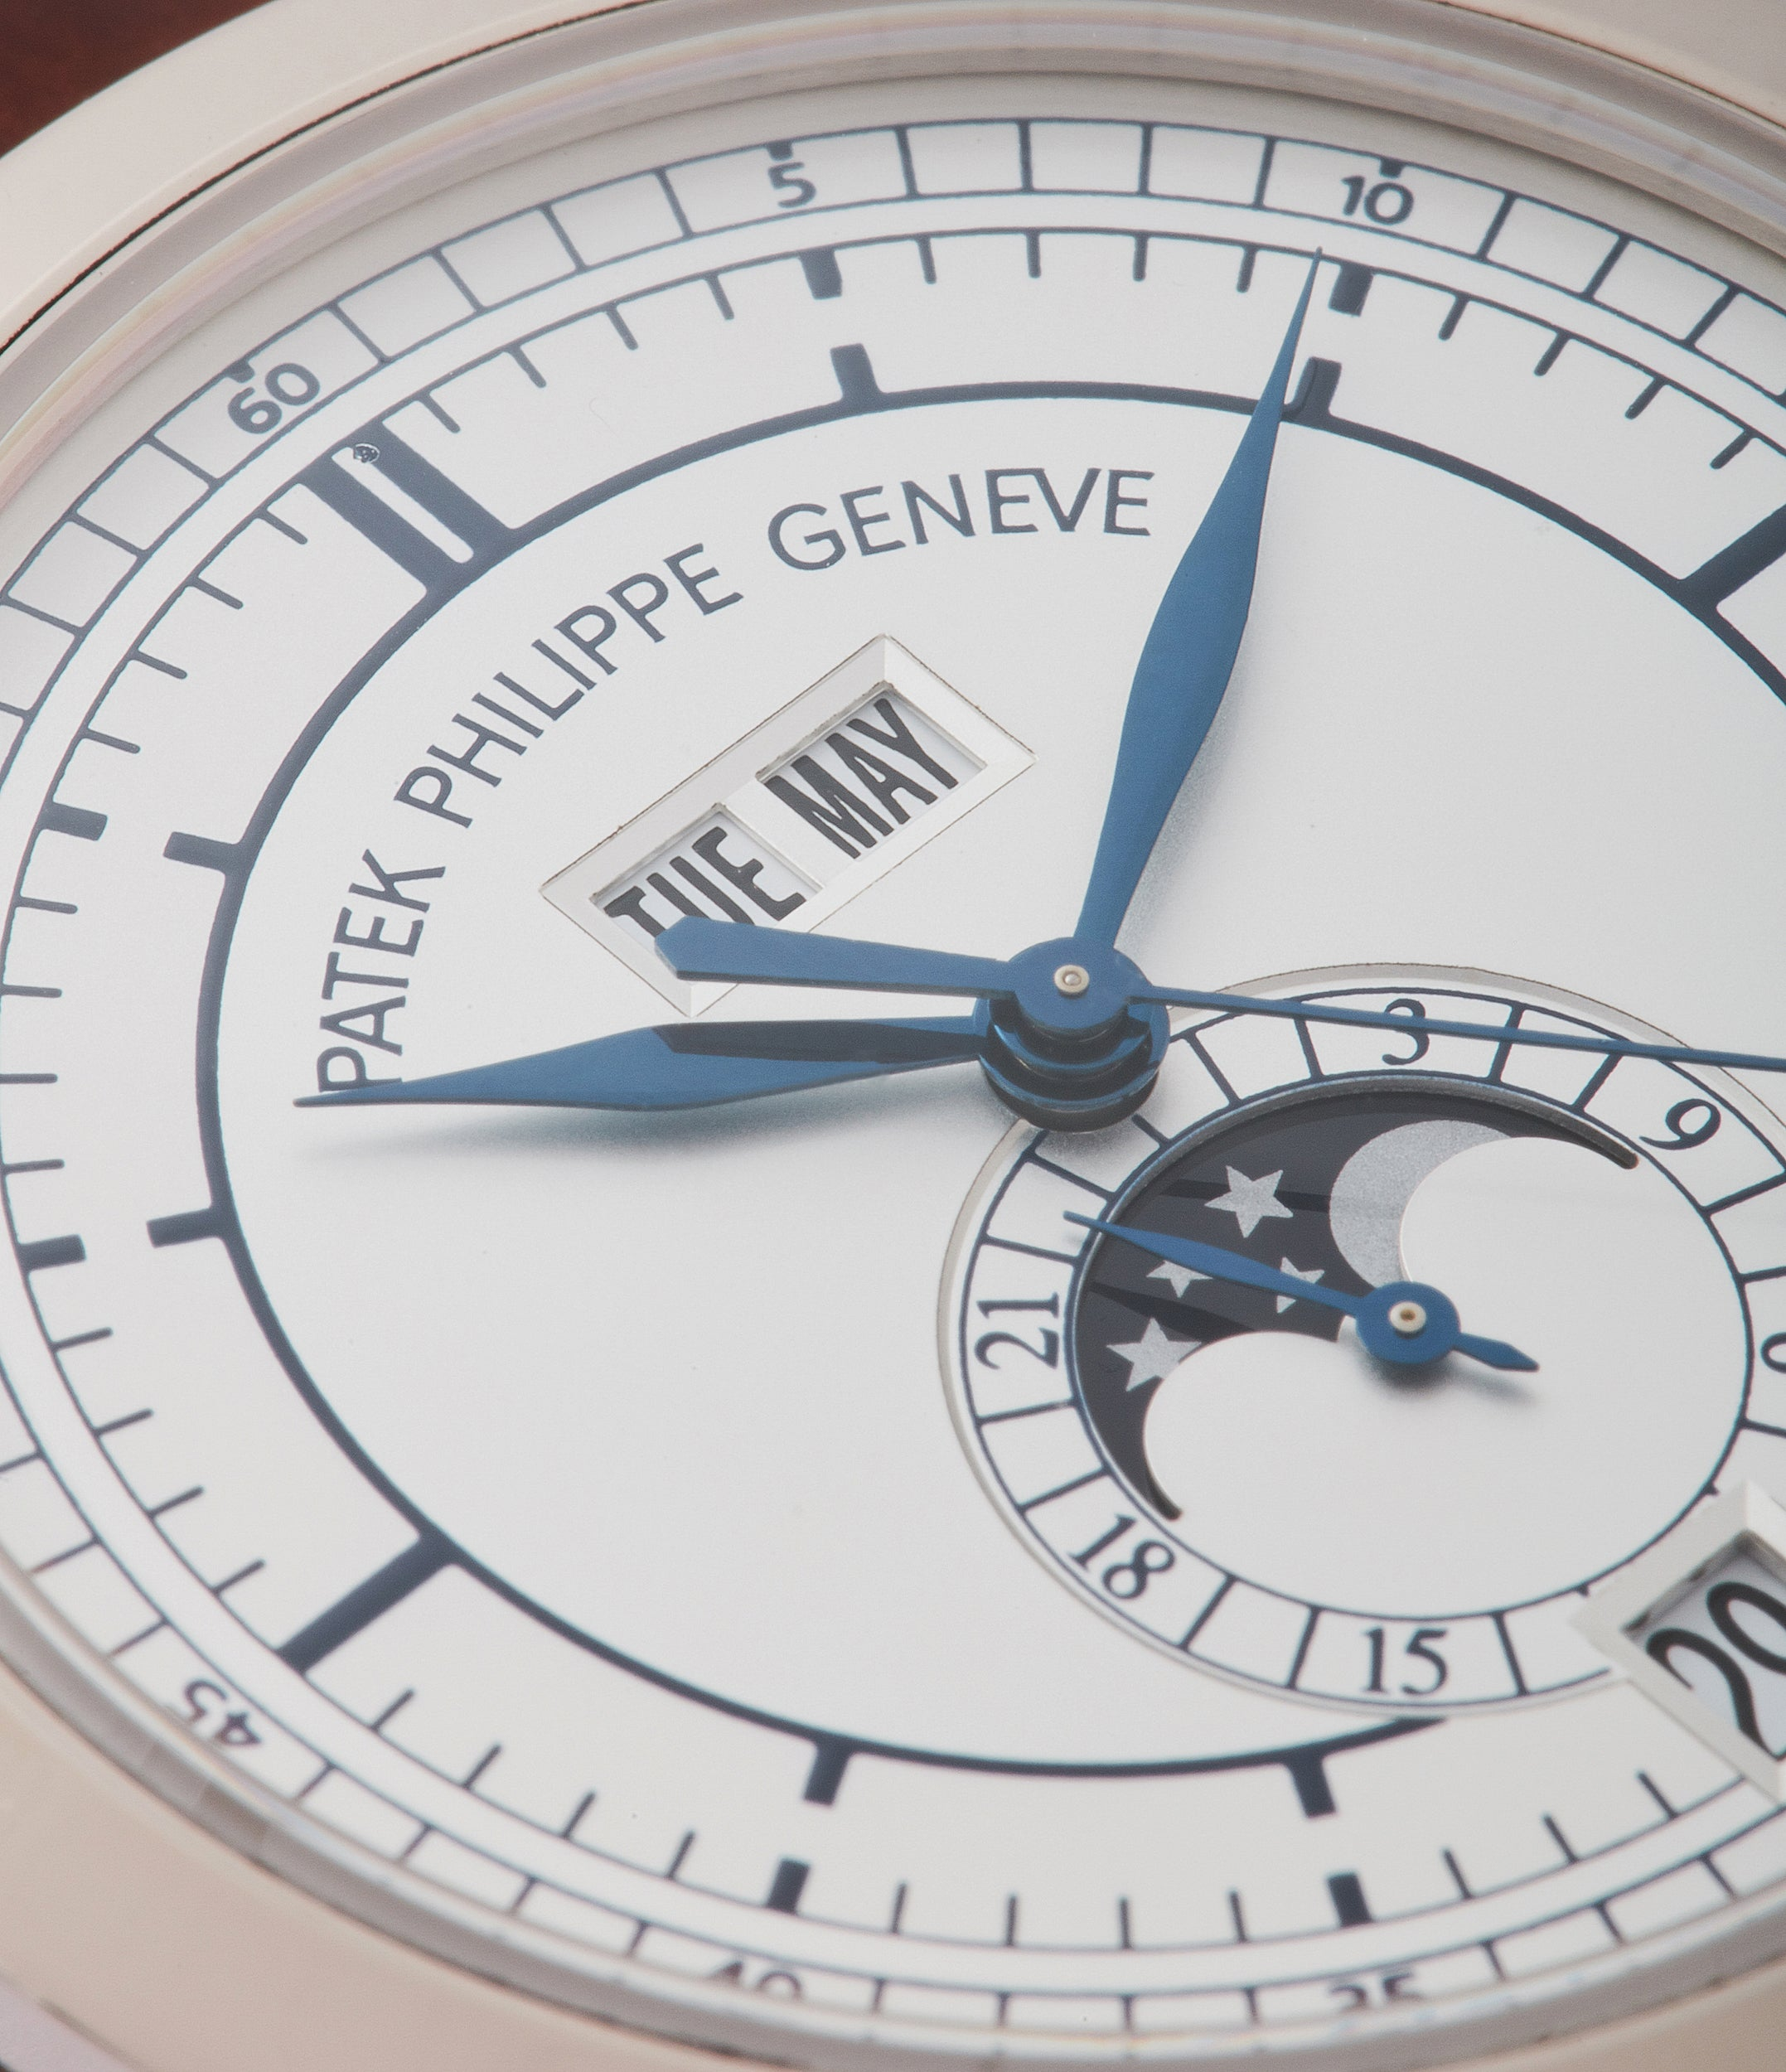 buying Patek Philippe 5396G-001 Annual Calendar pre-owned rare white gold dress watch for sale online at A Collected Man London UK specialist of rare watches